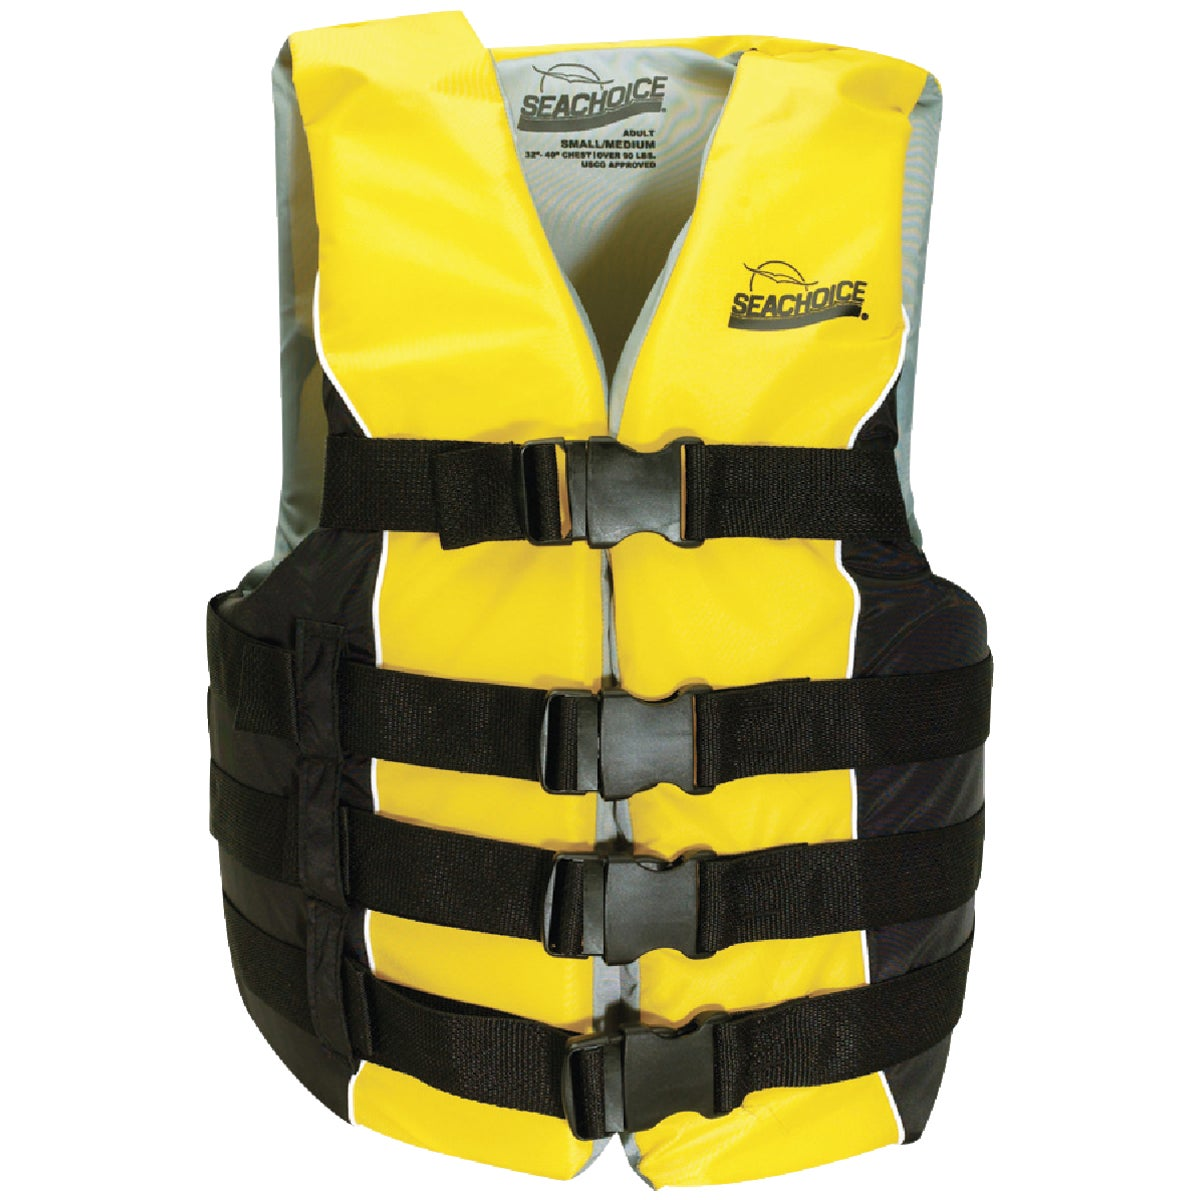 SM/MED 4 BELT SKI VEST - 86410 by Seachoice Prod